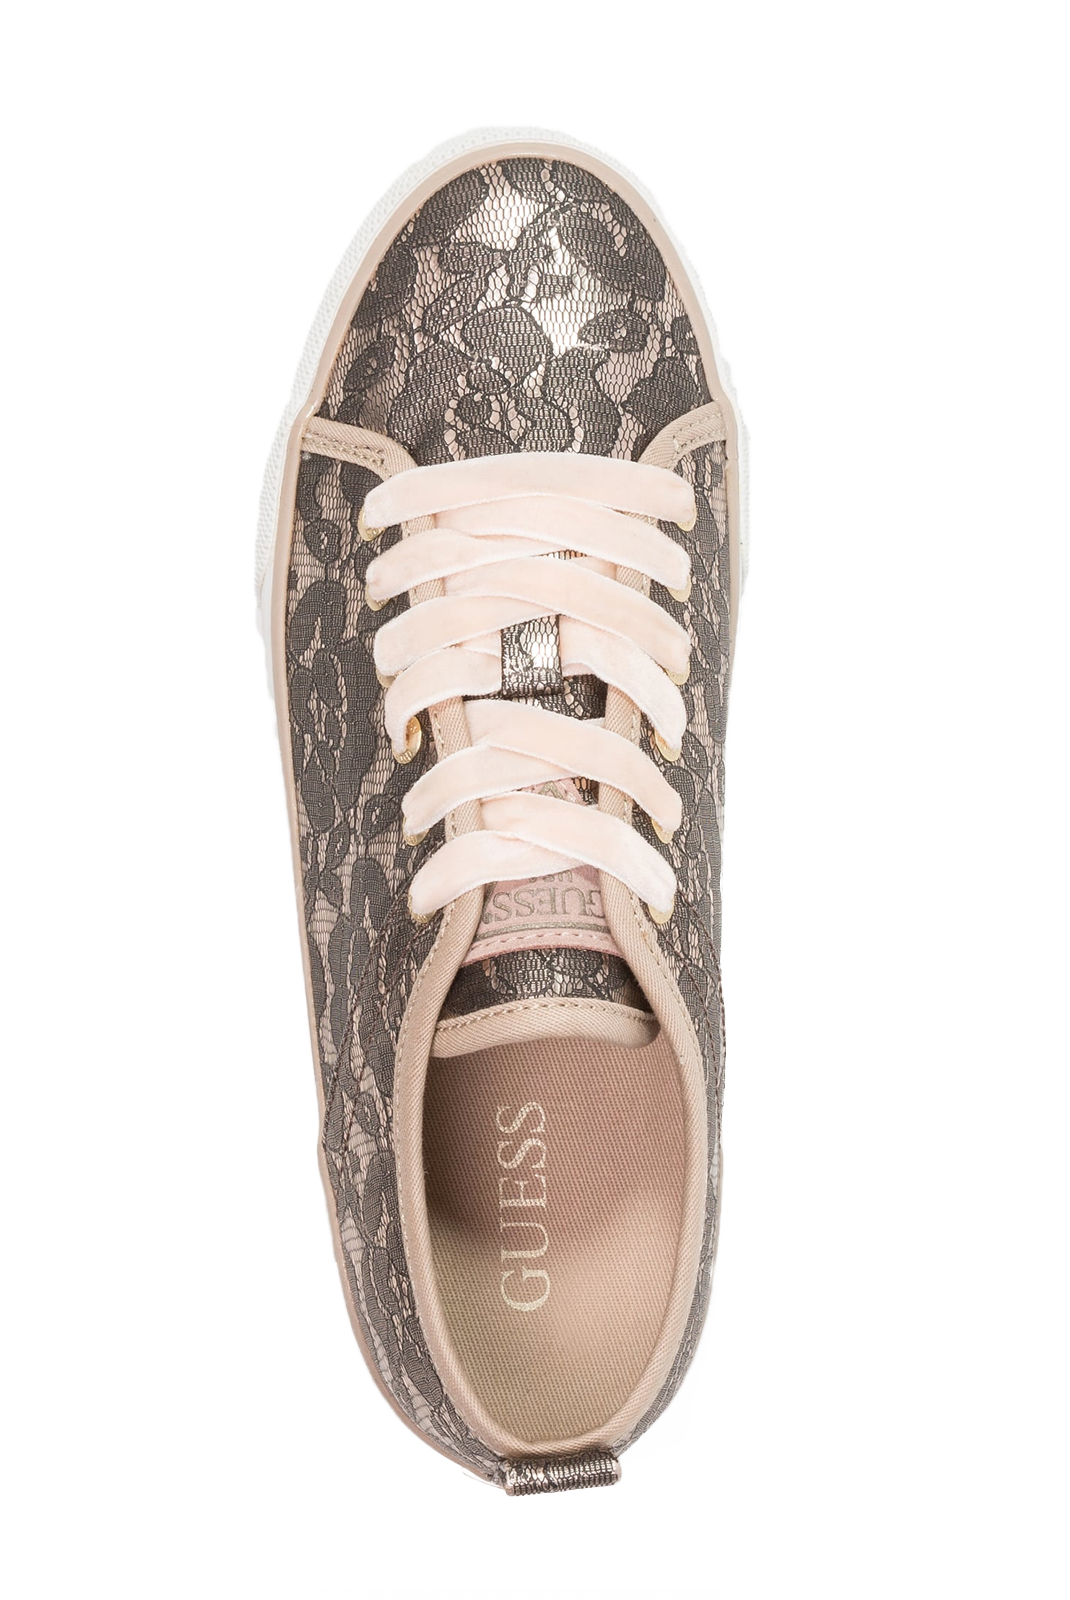 Baskets / Sneakers  Guess jeans FLJLI3 LAC12 jolie beige